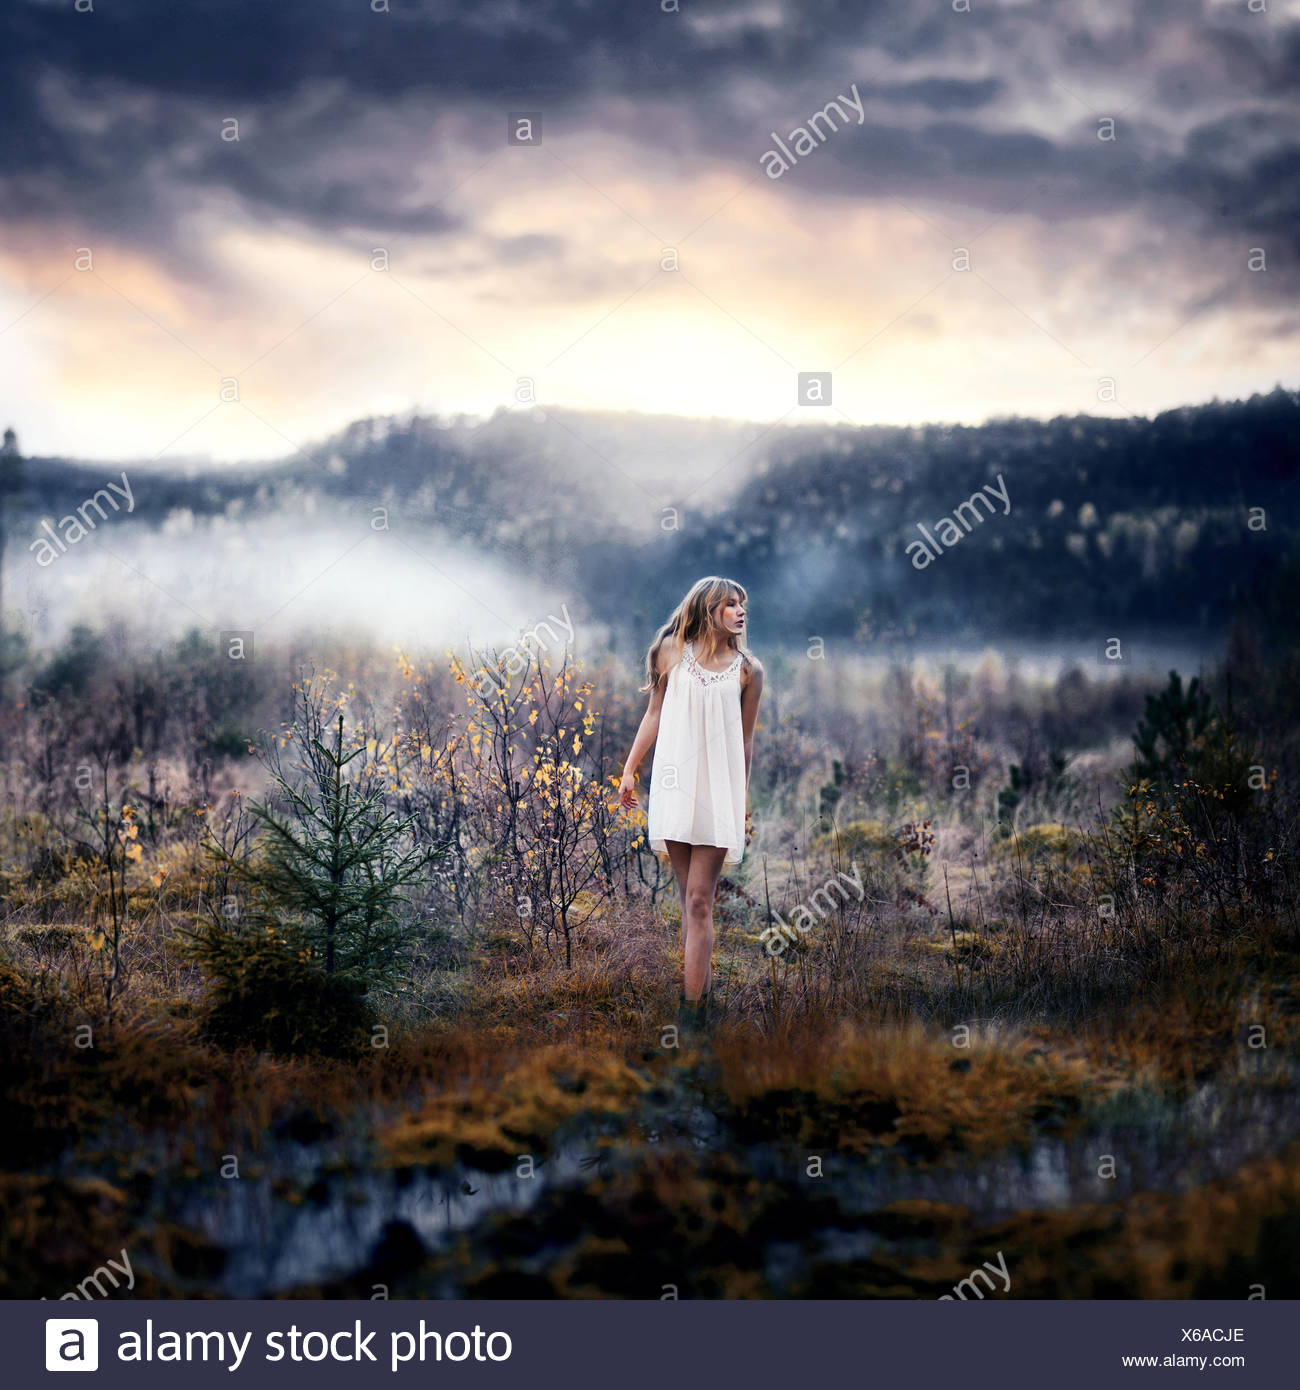 Woman standing in rural landscape - Stock Image